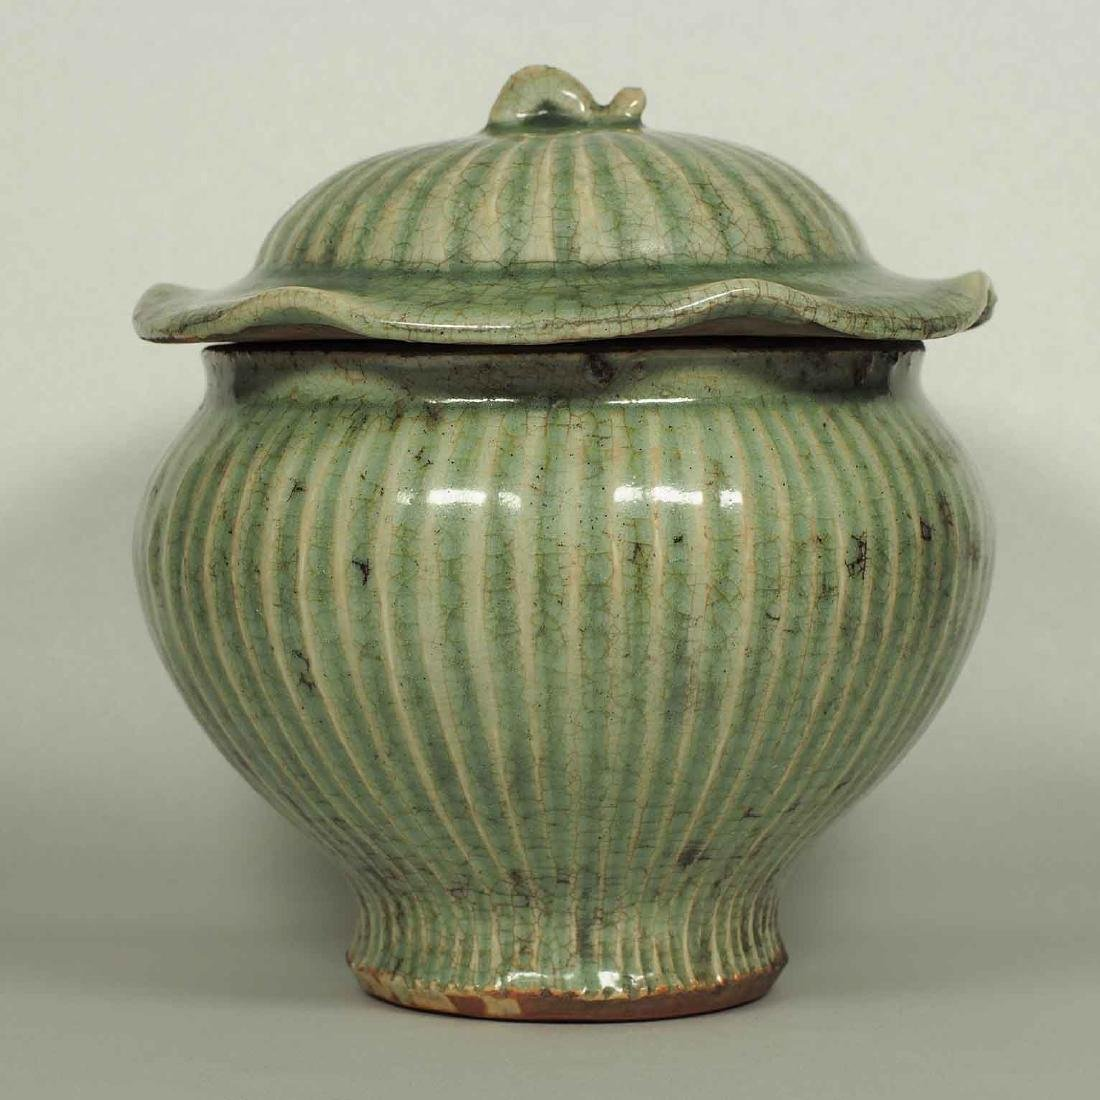 Longquan Fluted Jar with Lid, late Southern Song-early